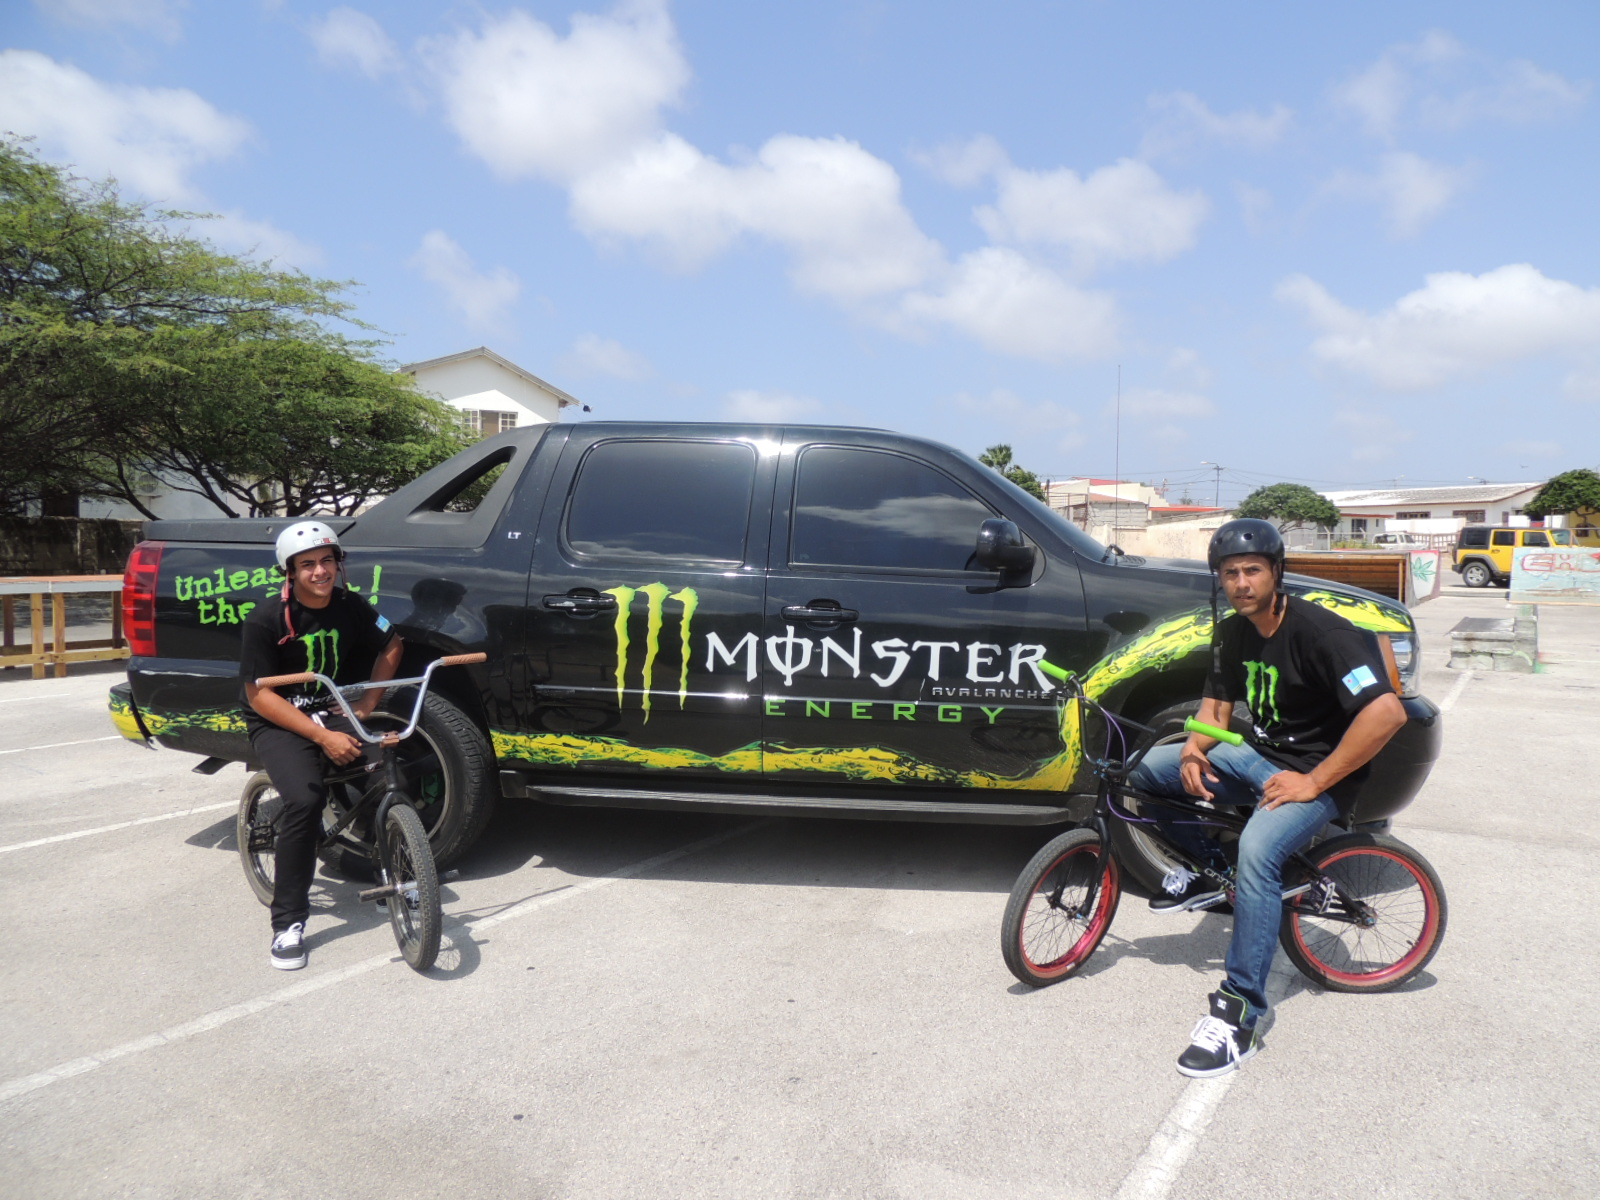 ATHLETANAN LOCAL DI MONSTER ENERGY TA REPRESENTA ARUBA DEN MONSTER ENERGY BMX FREESTYLE COMPETITION